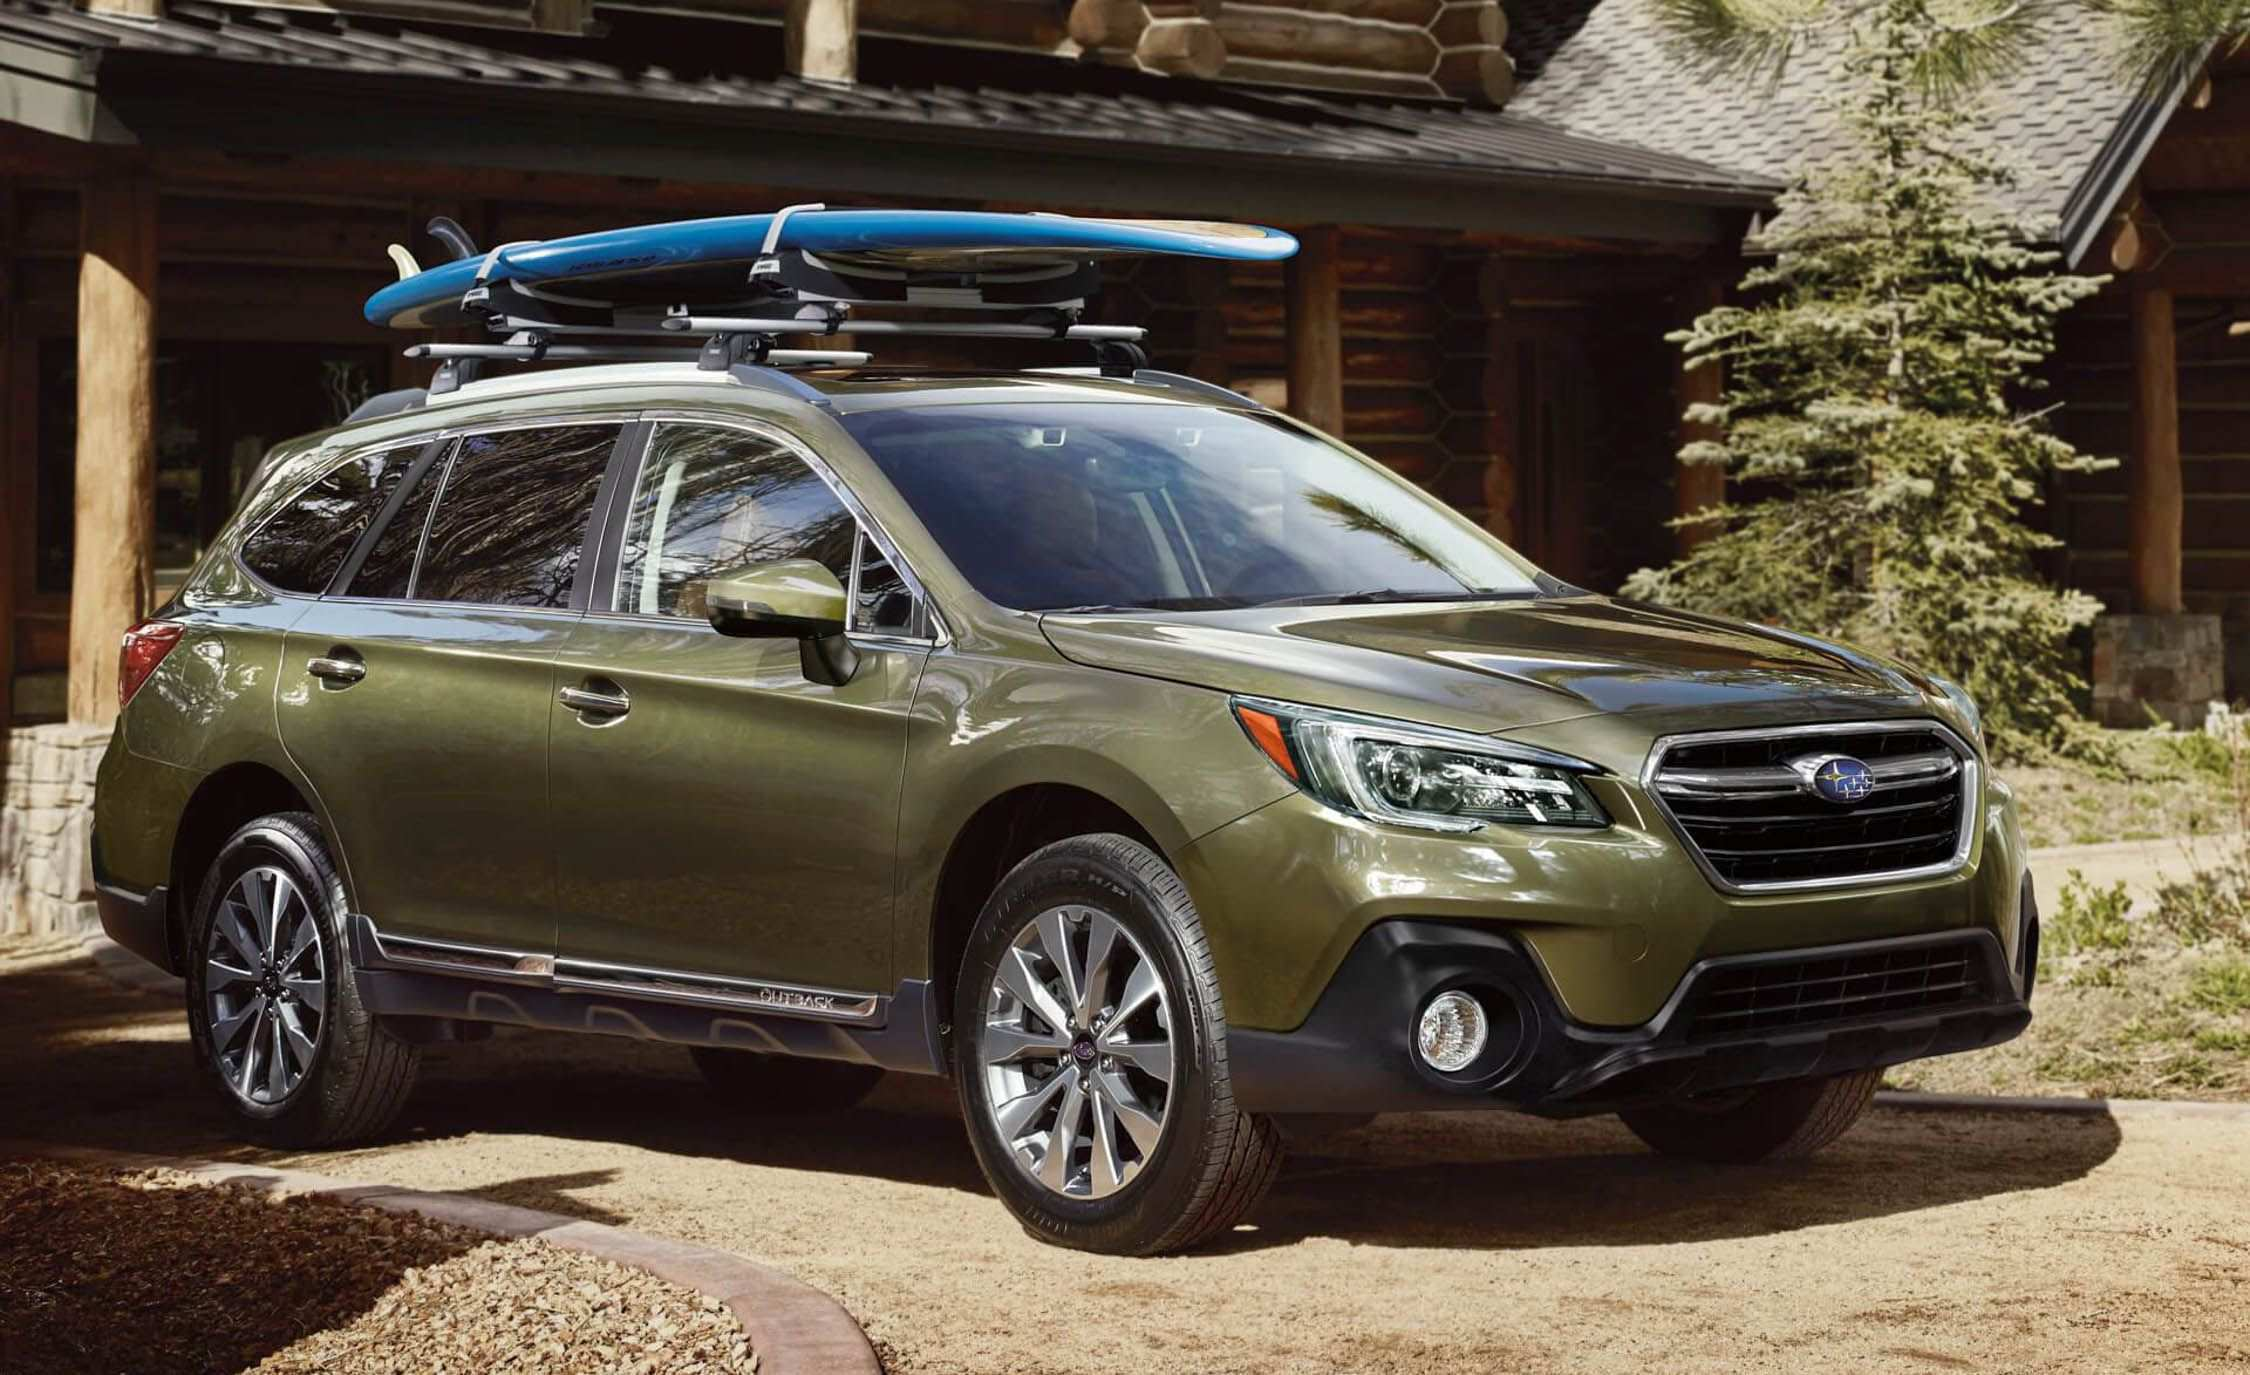 89 The Best When Will The 2020 Subaru Outback Be Released Concept